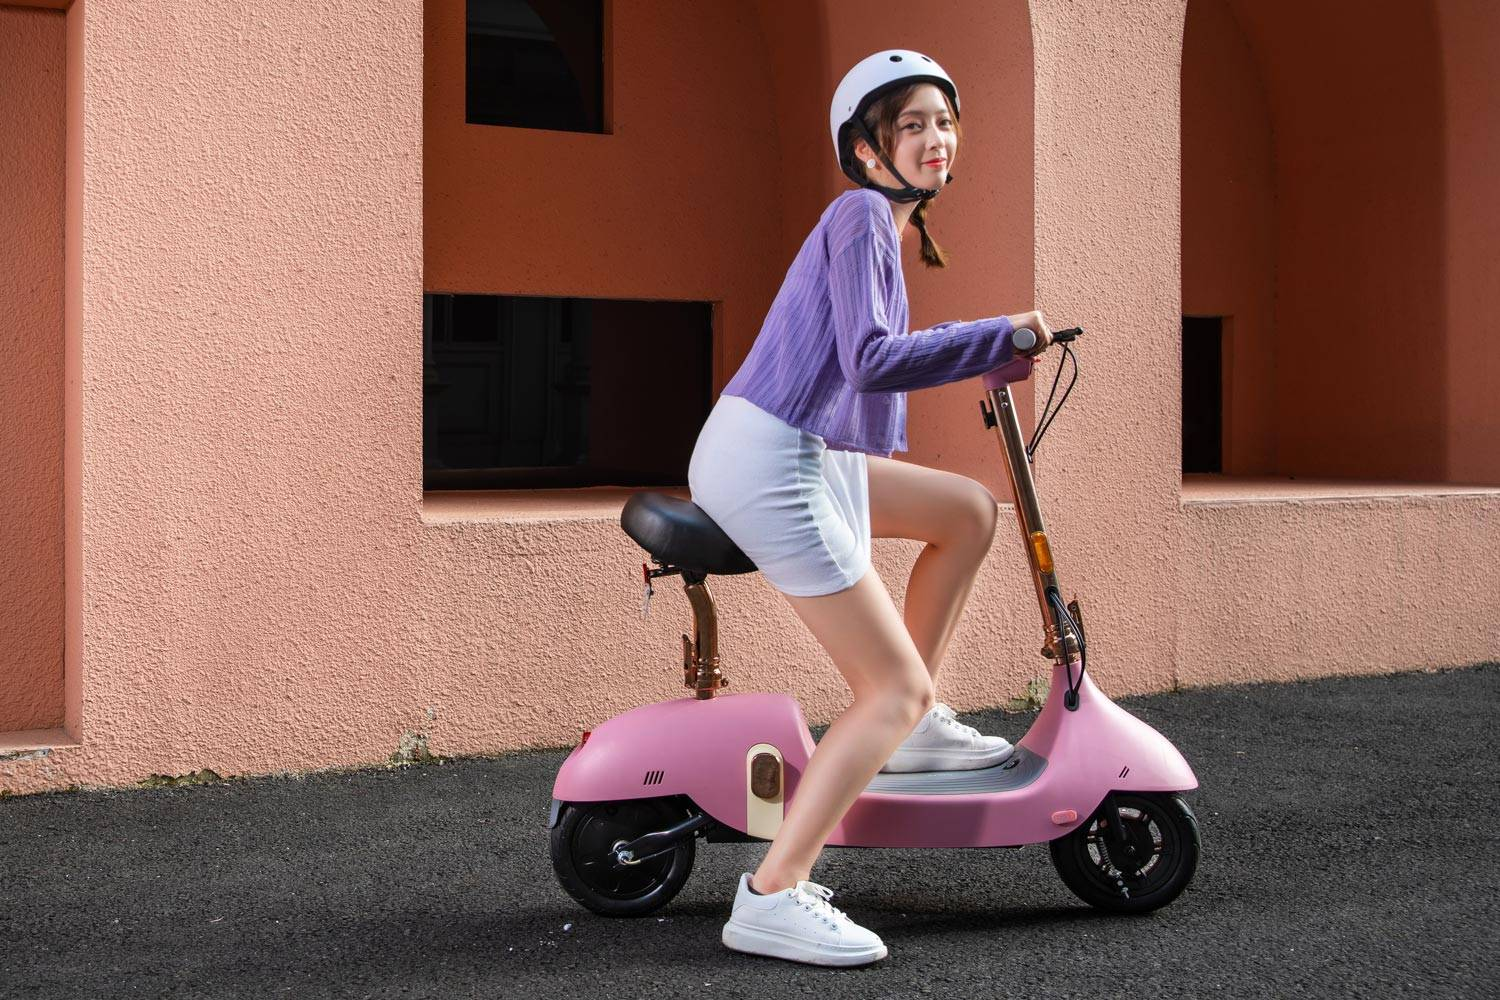 okai ea10 electric scooter girl riding with helmet